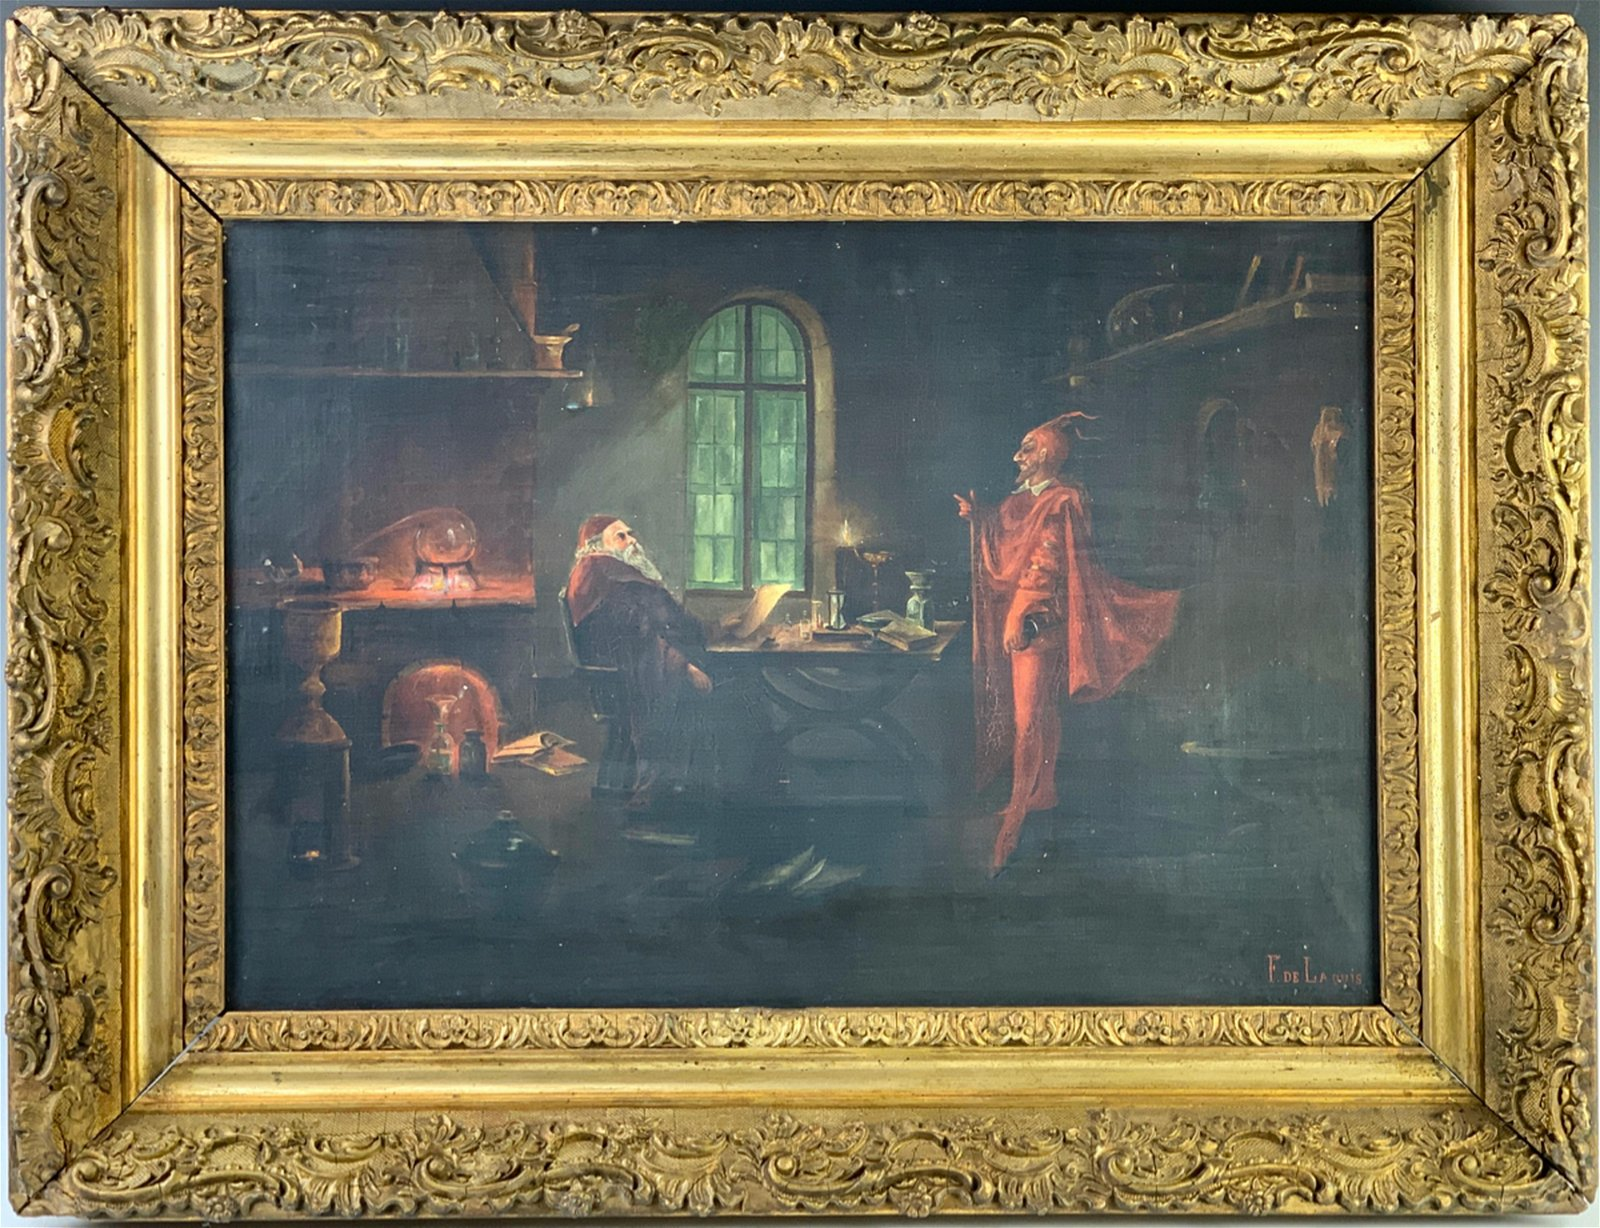 Faust & Mephistopheles Painting Sgd. F. Delaquis